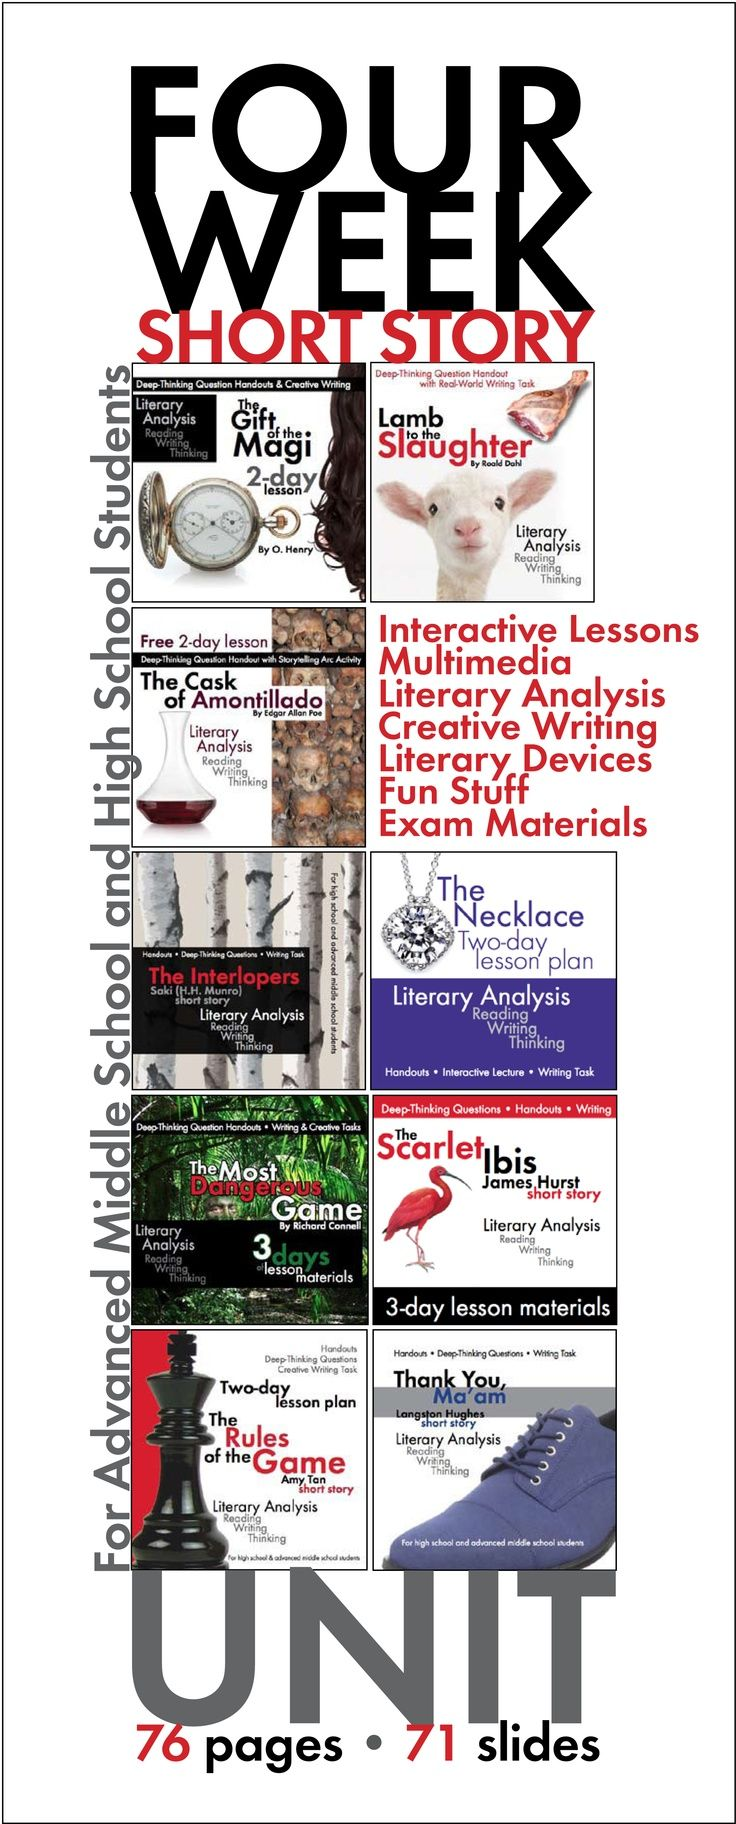 Beloved classic short stories are ramped up in this MASSIVE bundle of dynamic lessons. Click here for a full month of active learning.